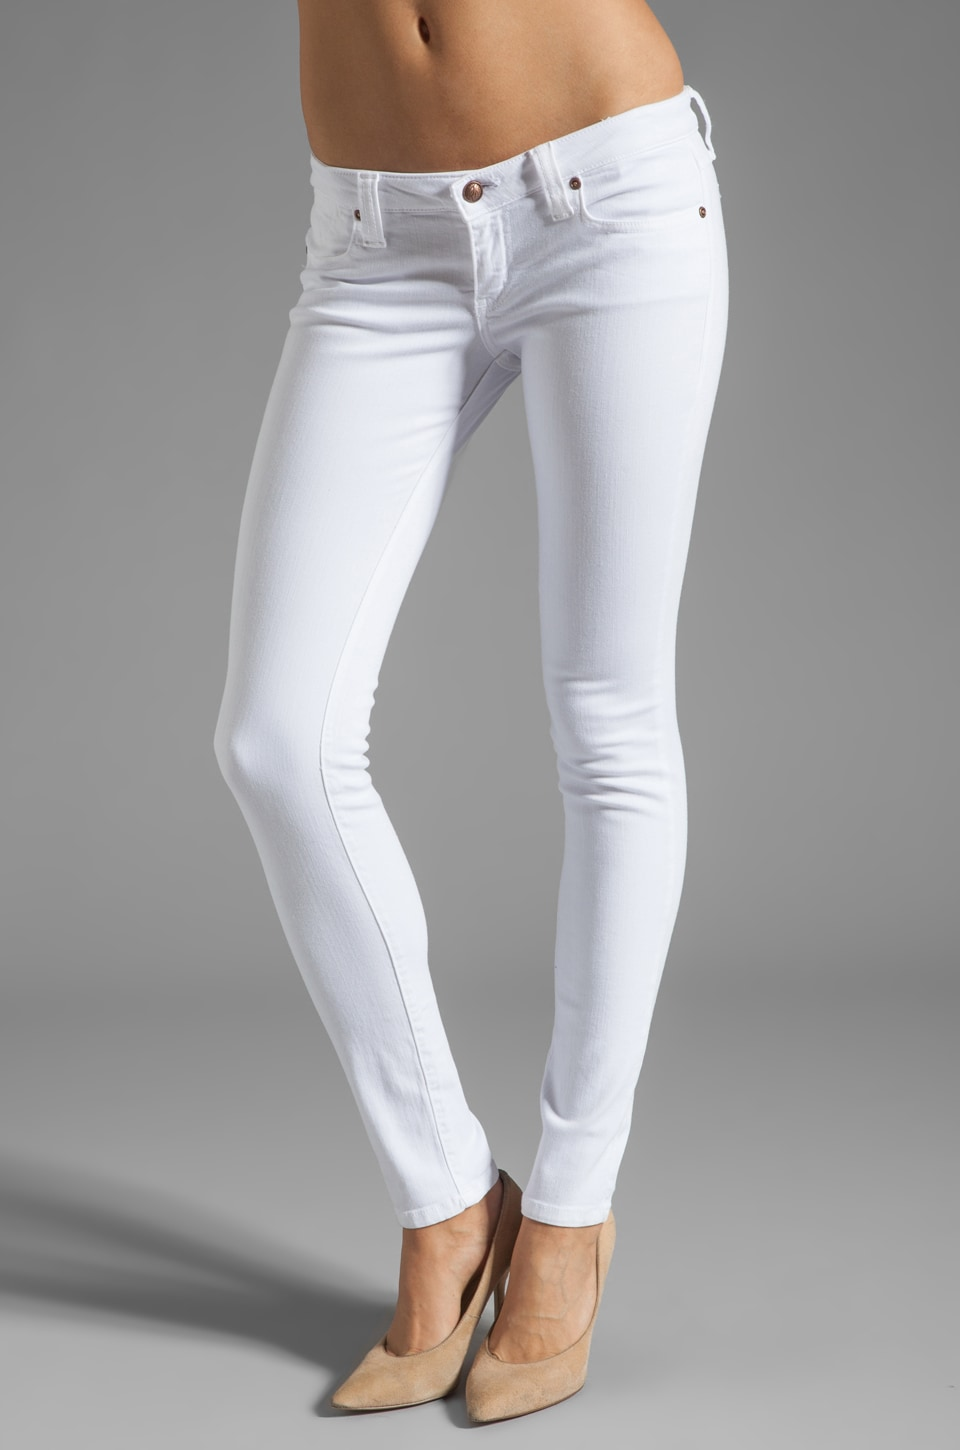 Frankie B. Jeans Sweet Bow Skinny in White